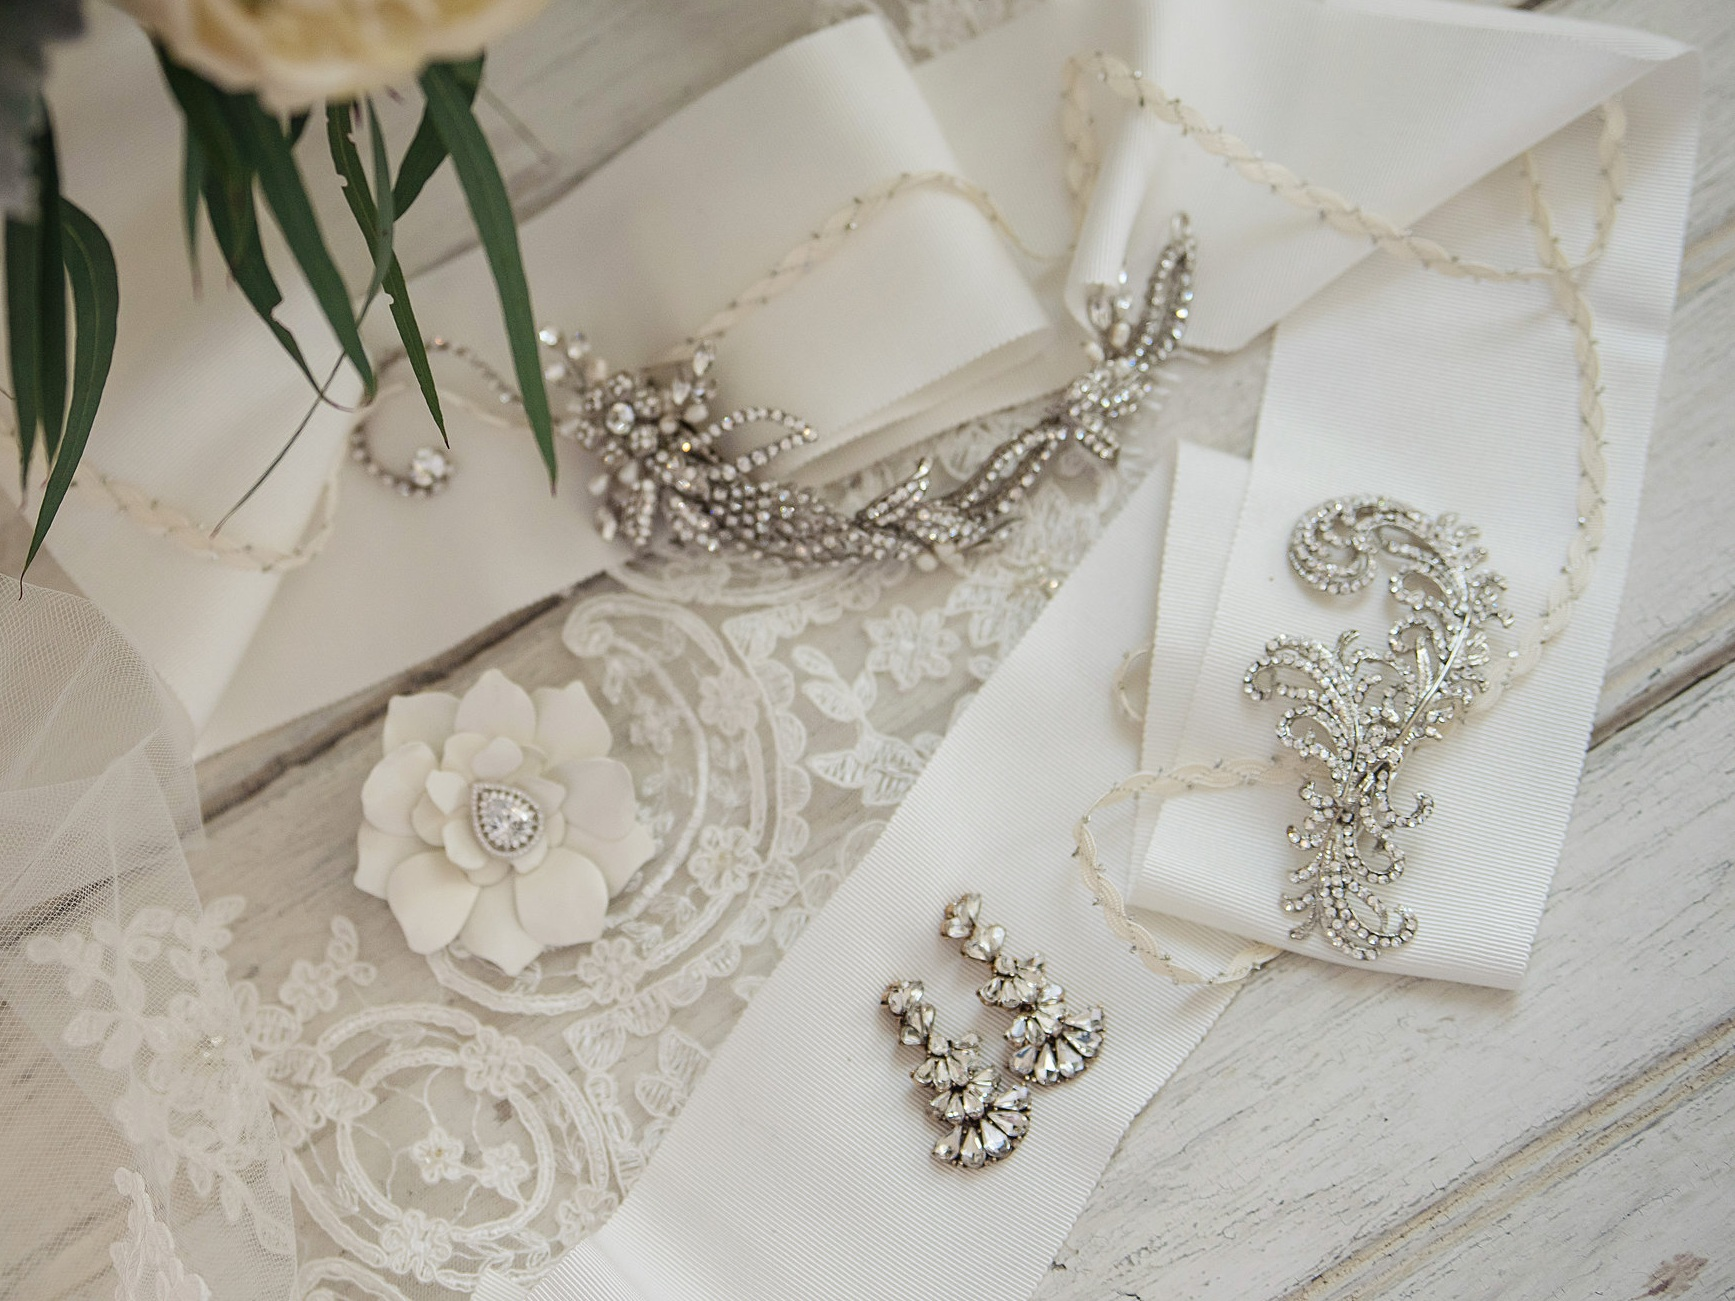 Accessories - My designs are inspired by you. Bridal Finery is delighted to fulfill your vision for an exquisite hairpiece, delicate veil, warming wrap, jewelry, or pashminas for your wedding party or guests.Whether you're seeking classic elegance, incorporating traditional elements that elude a timeless quality, are a free spirited bride, or prefer a more modern edge, my goal is for each of my brides to sparkle and shine in her own way.